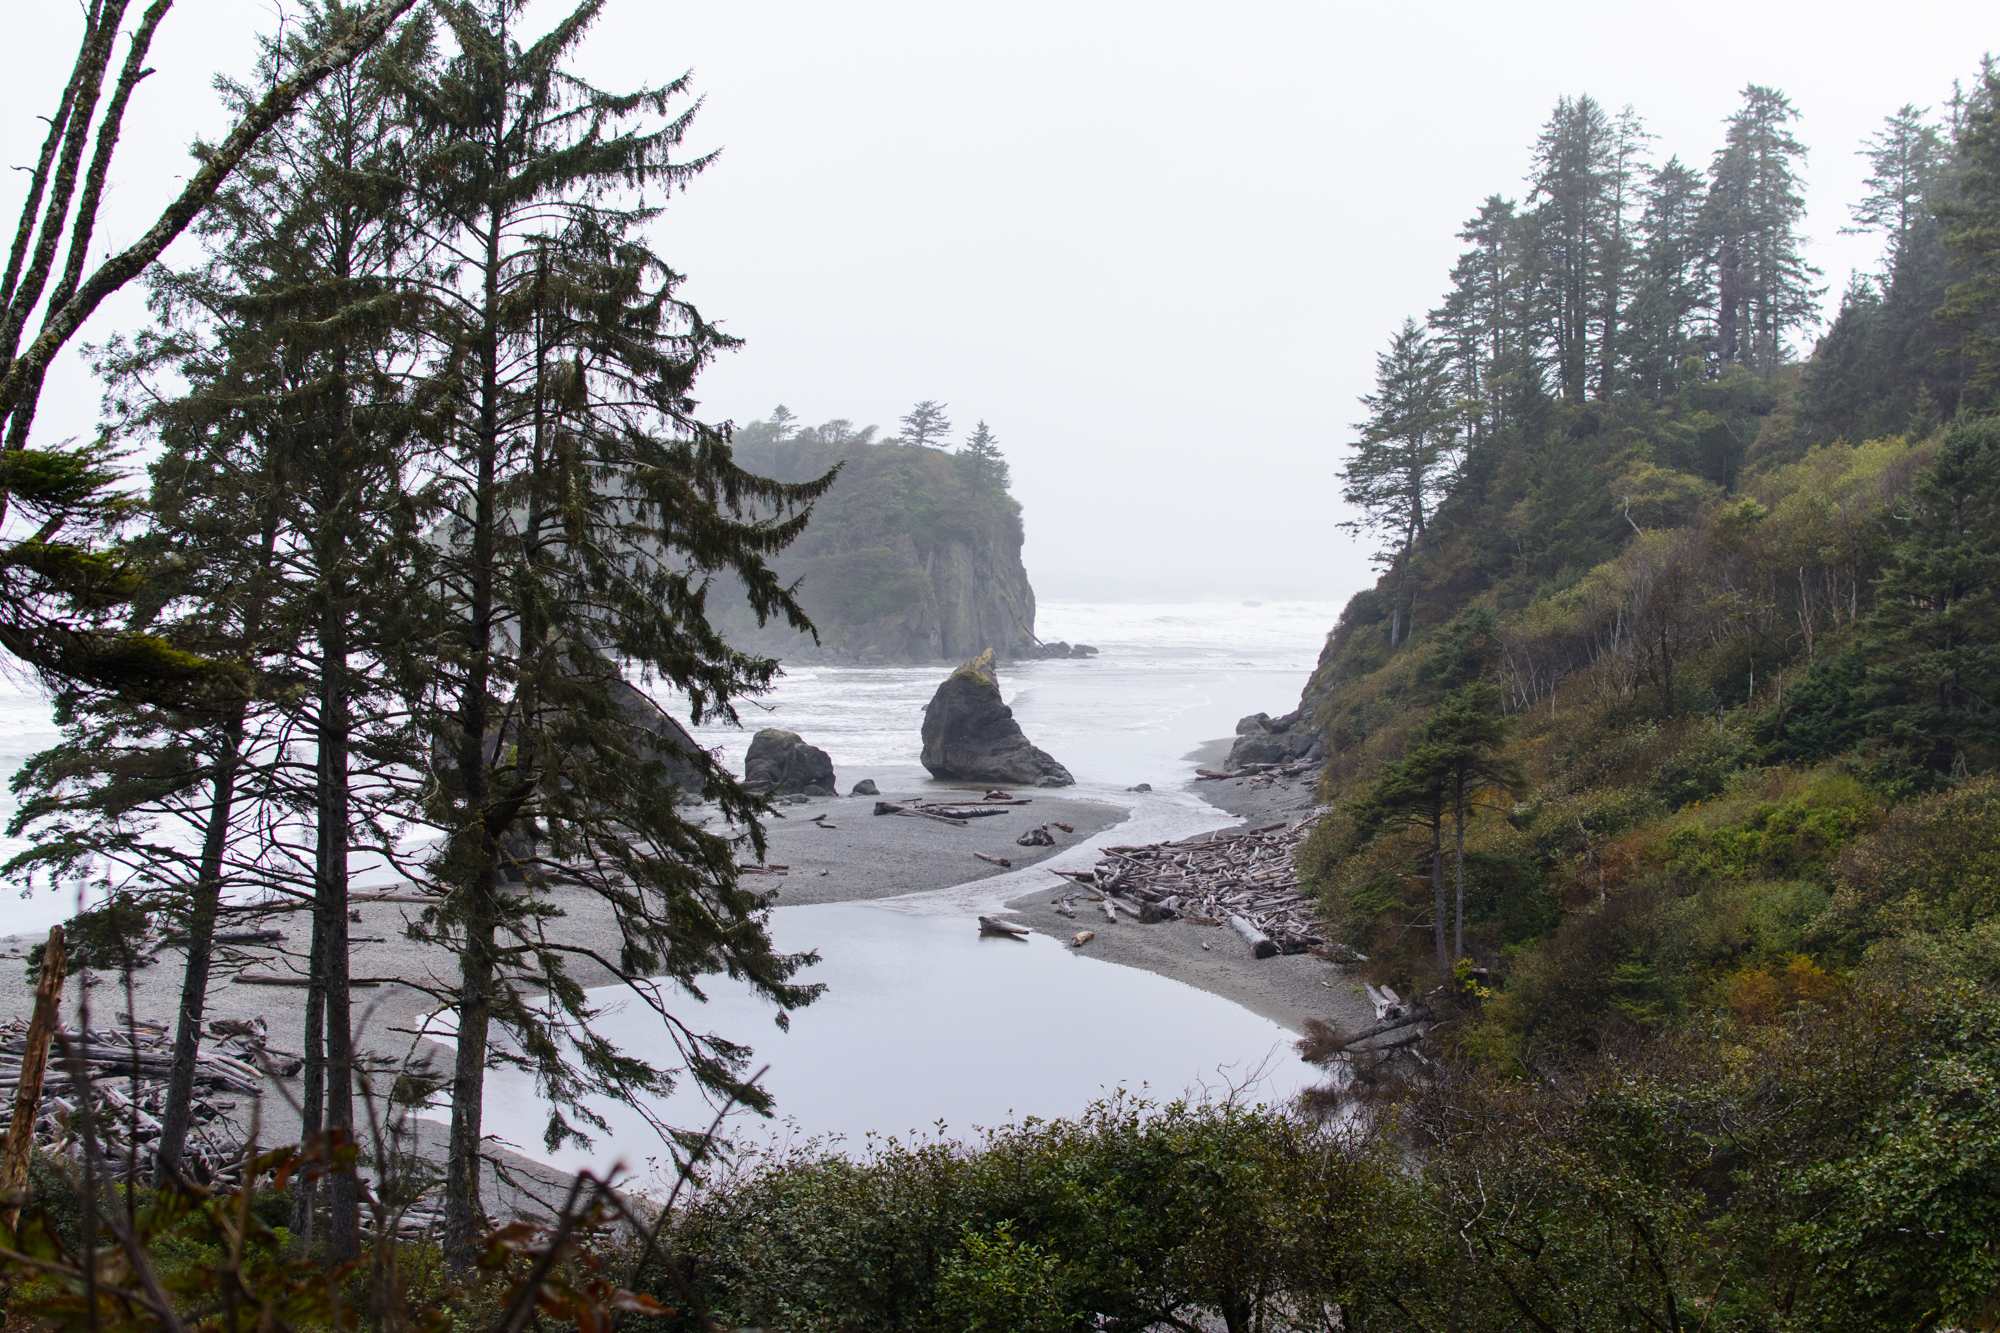 The Pacific Northwest Coast